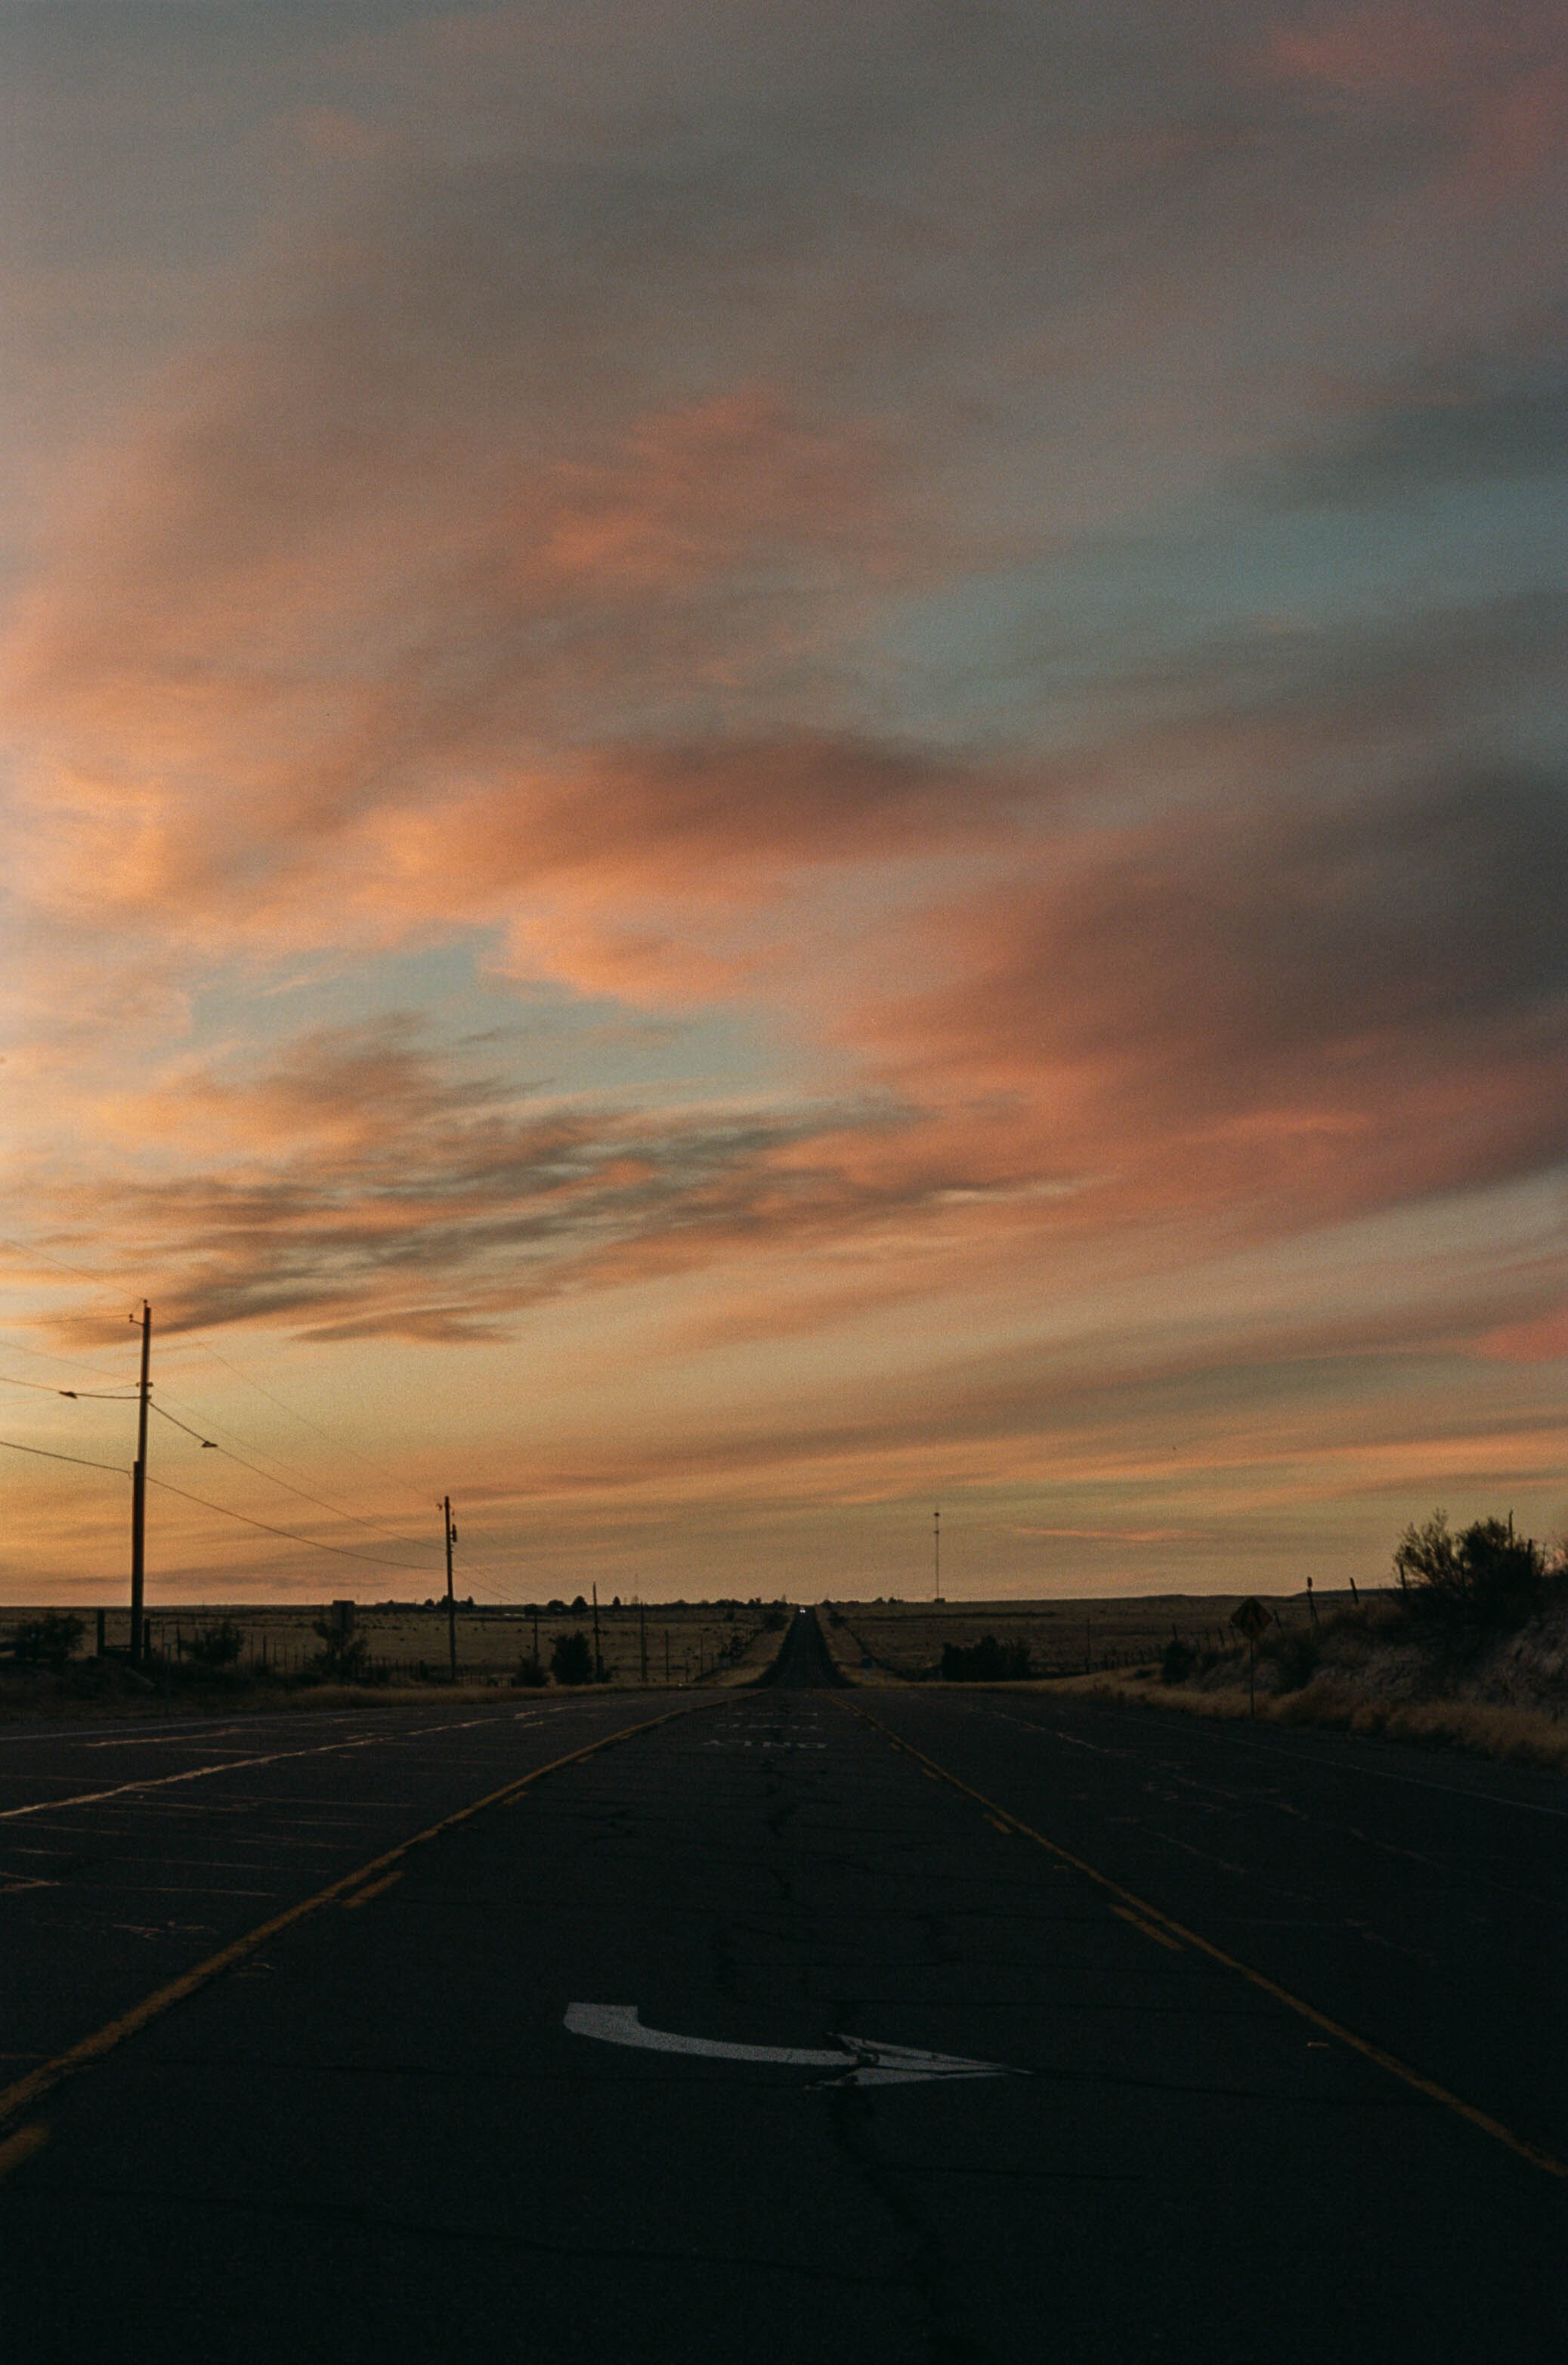 road-trip-marfa-texas-sunset-highway-portra-160-1